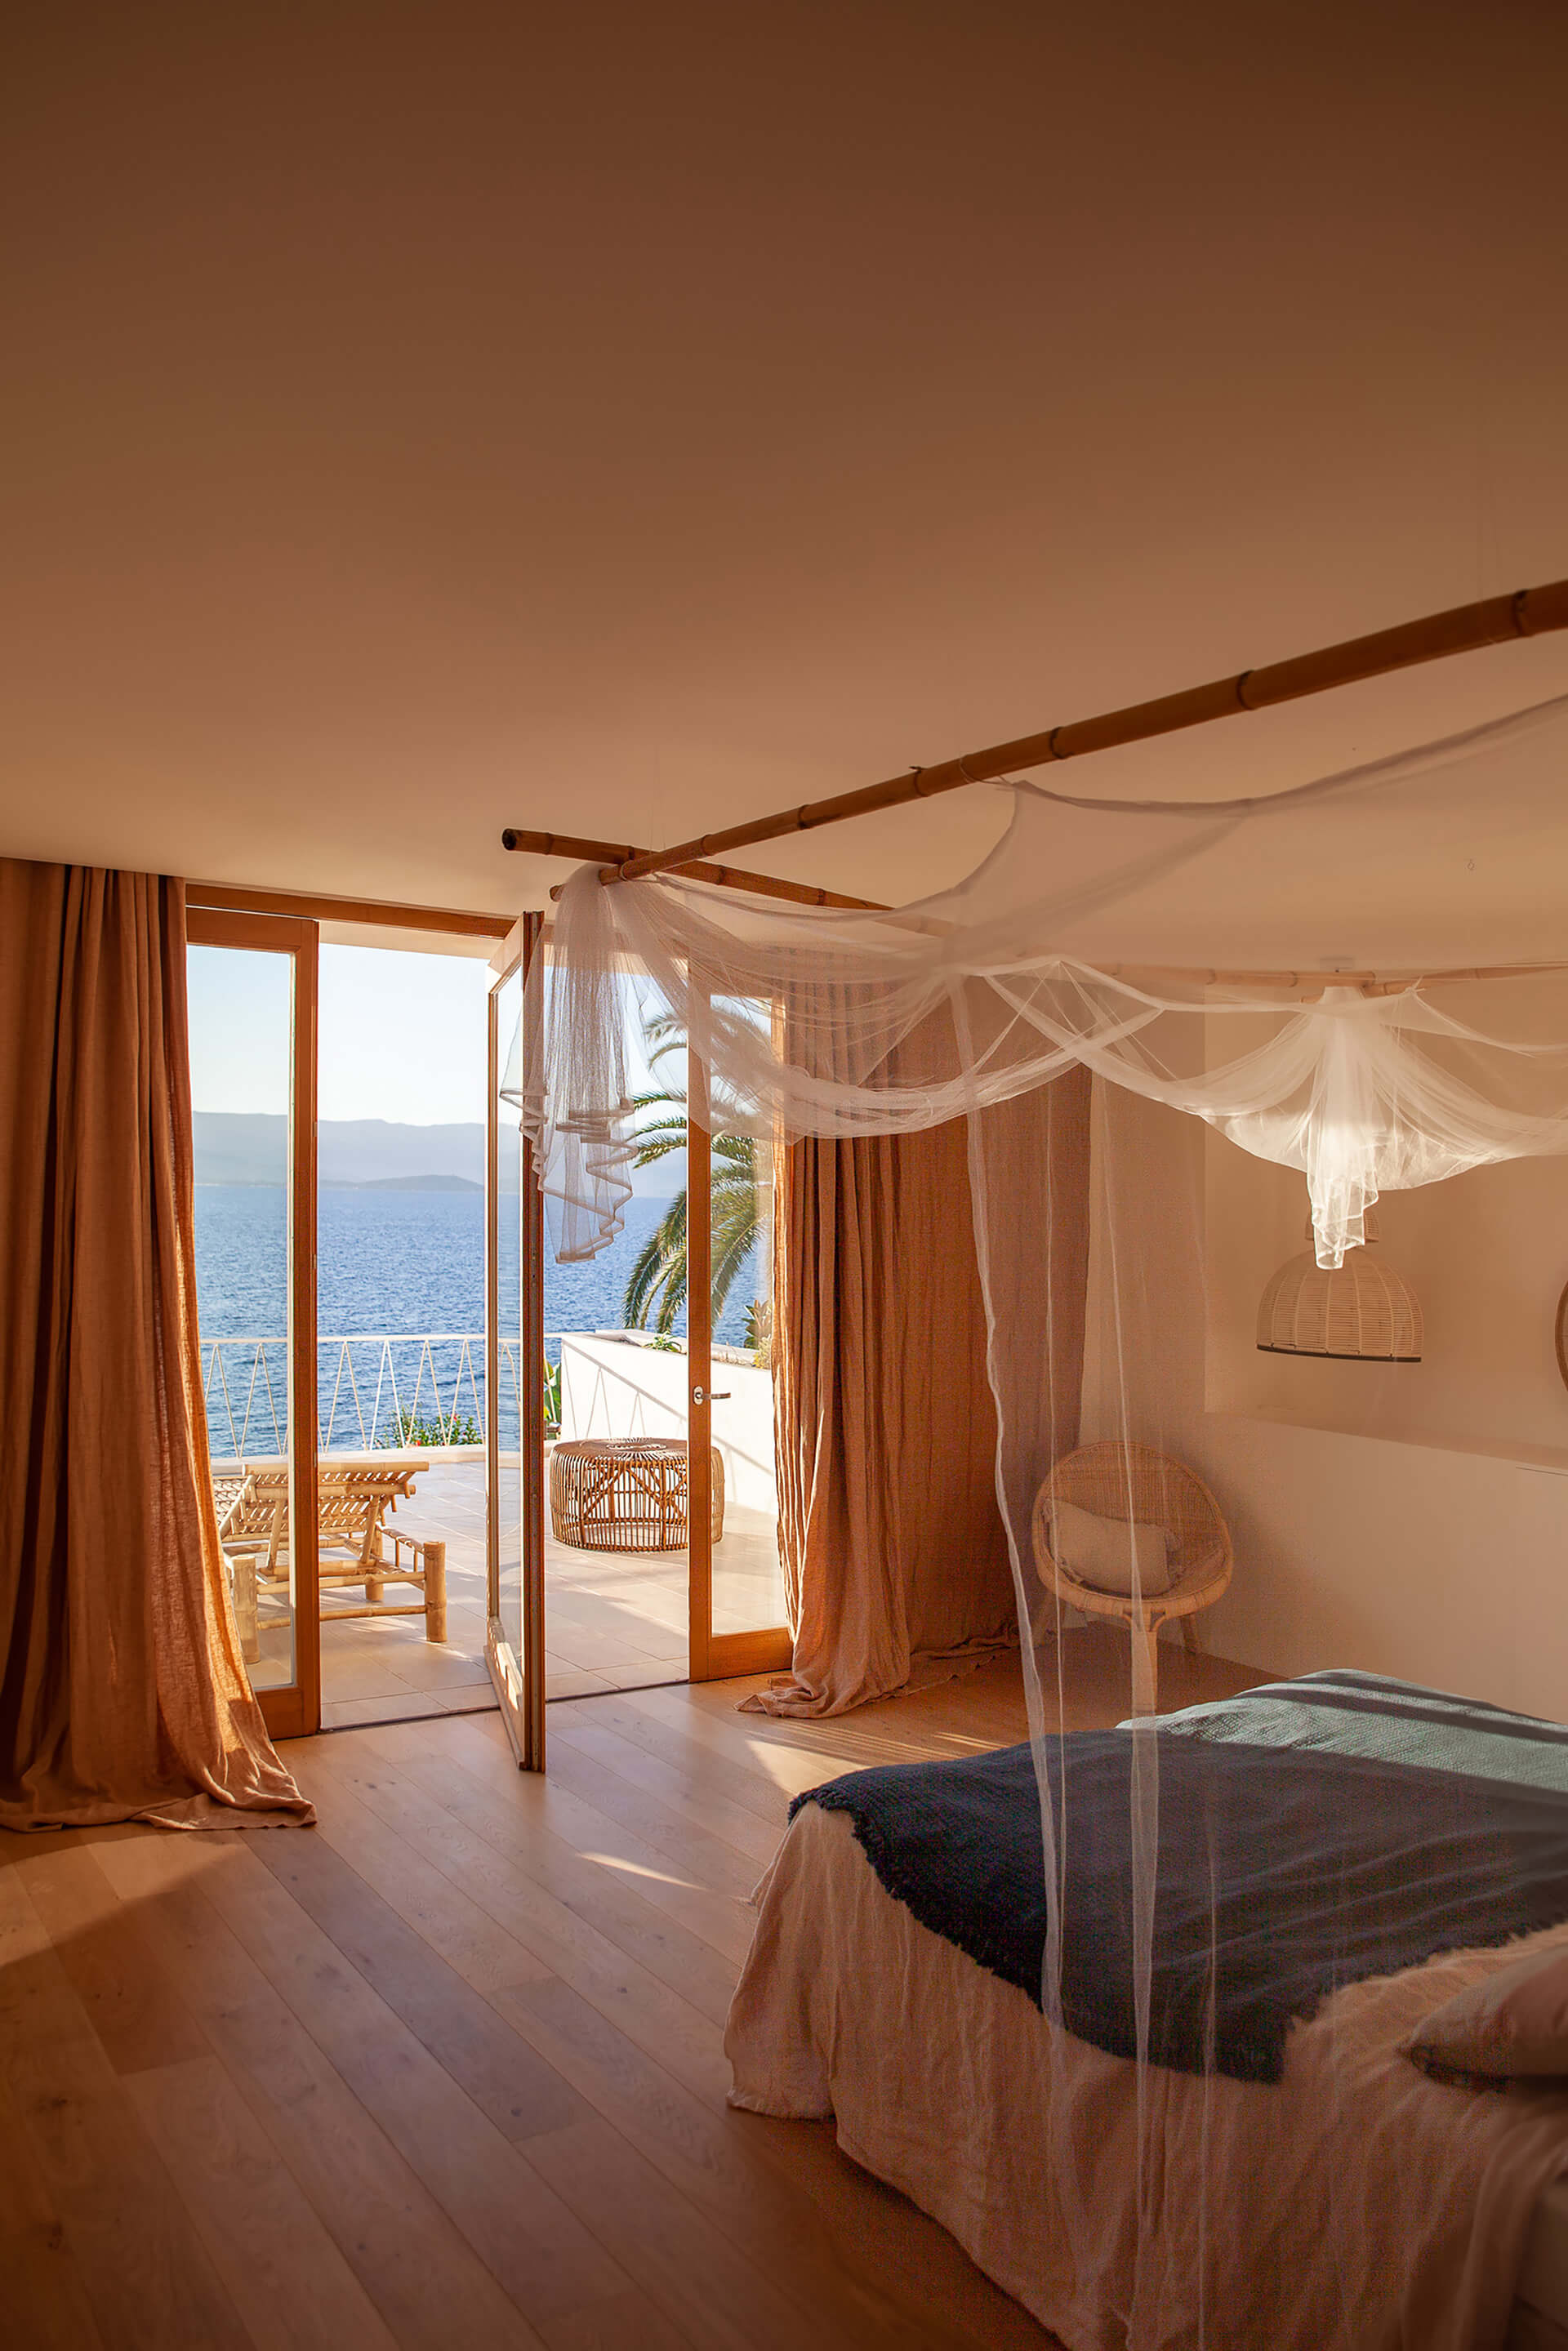 The warm coloured bedroom with views to the sea on the upper floor | Casa Santa Teresa in Corsica by Amelia Tavella Architects | STIRworld